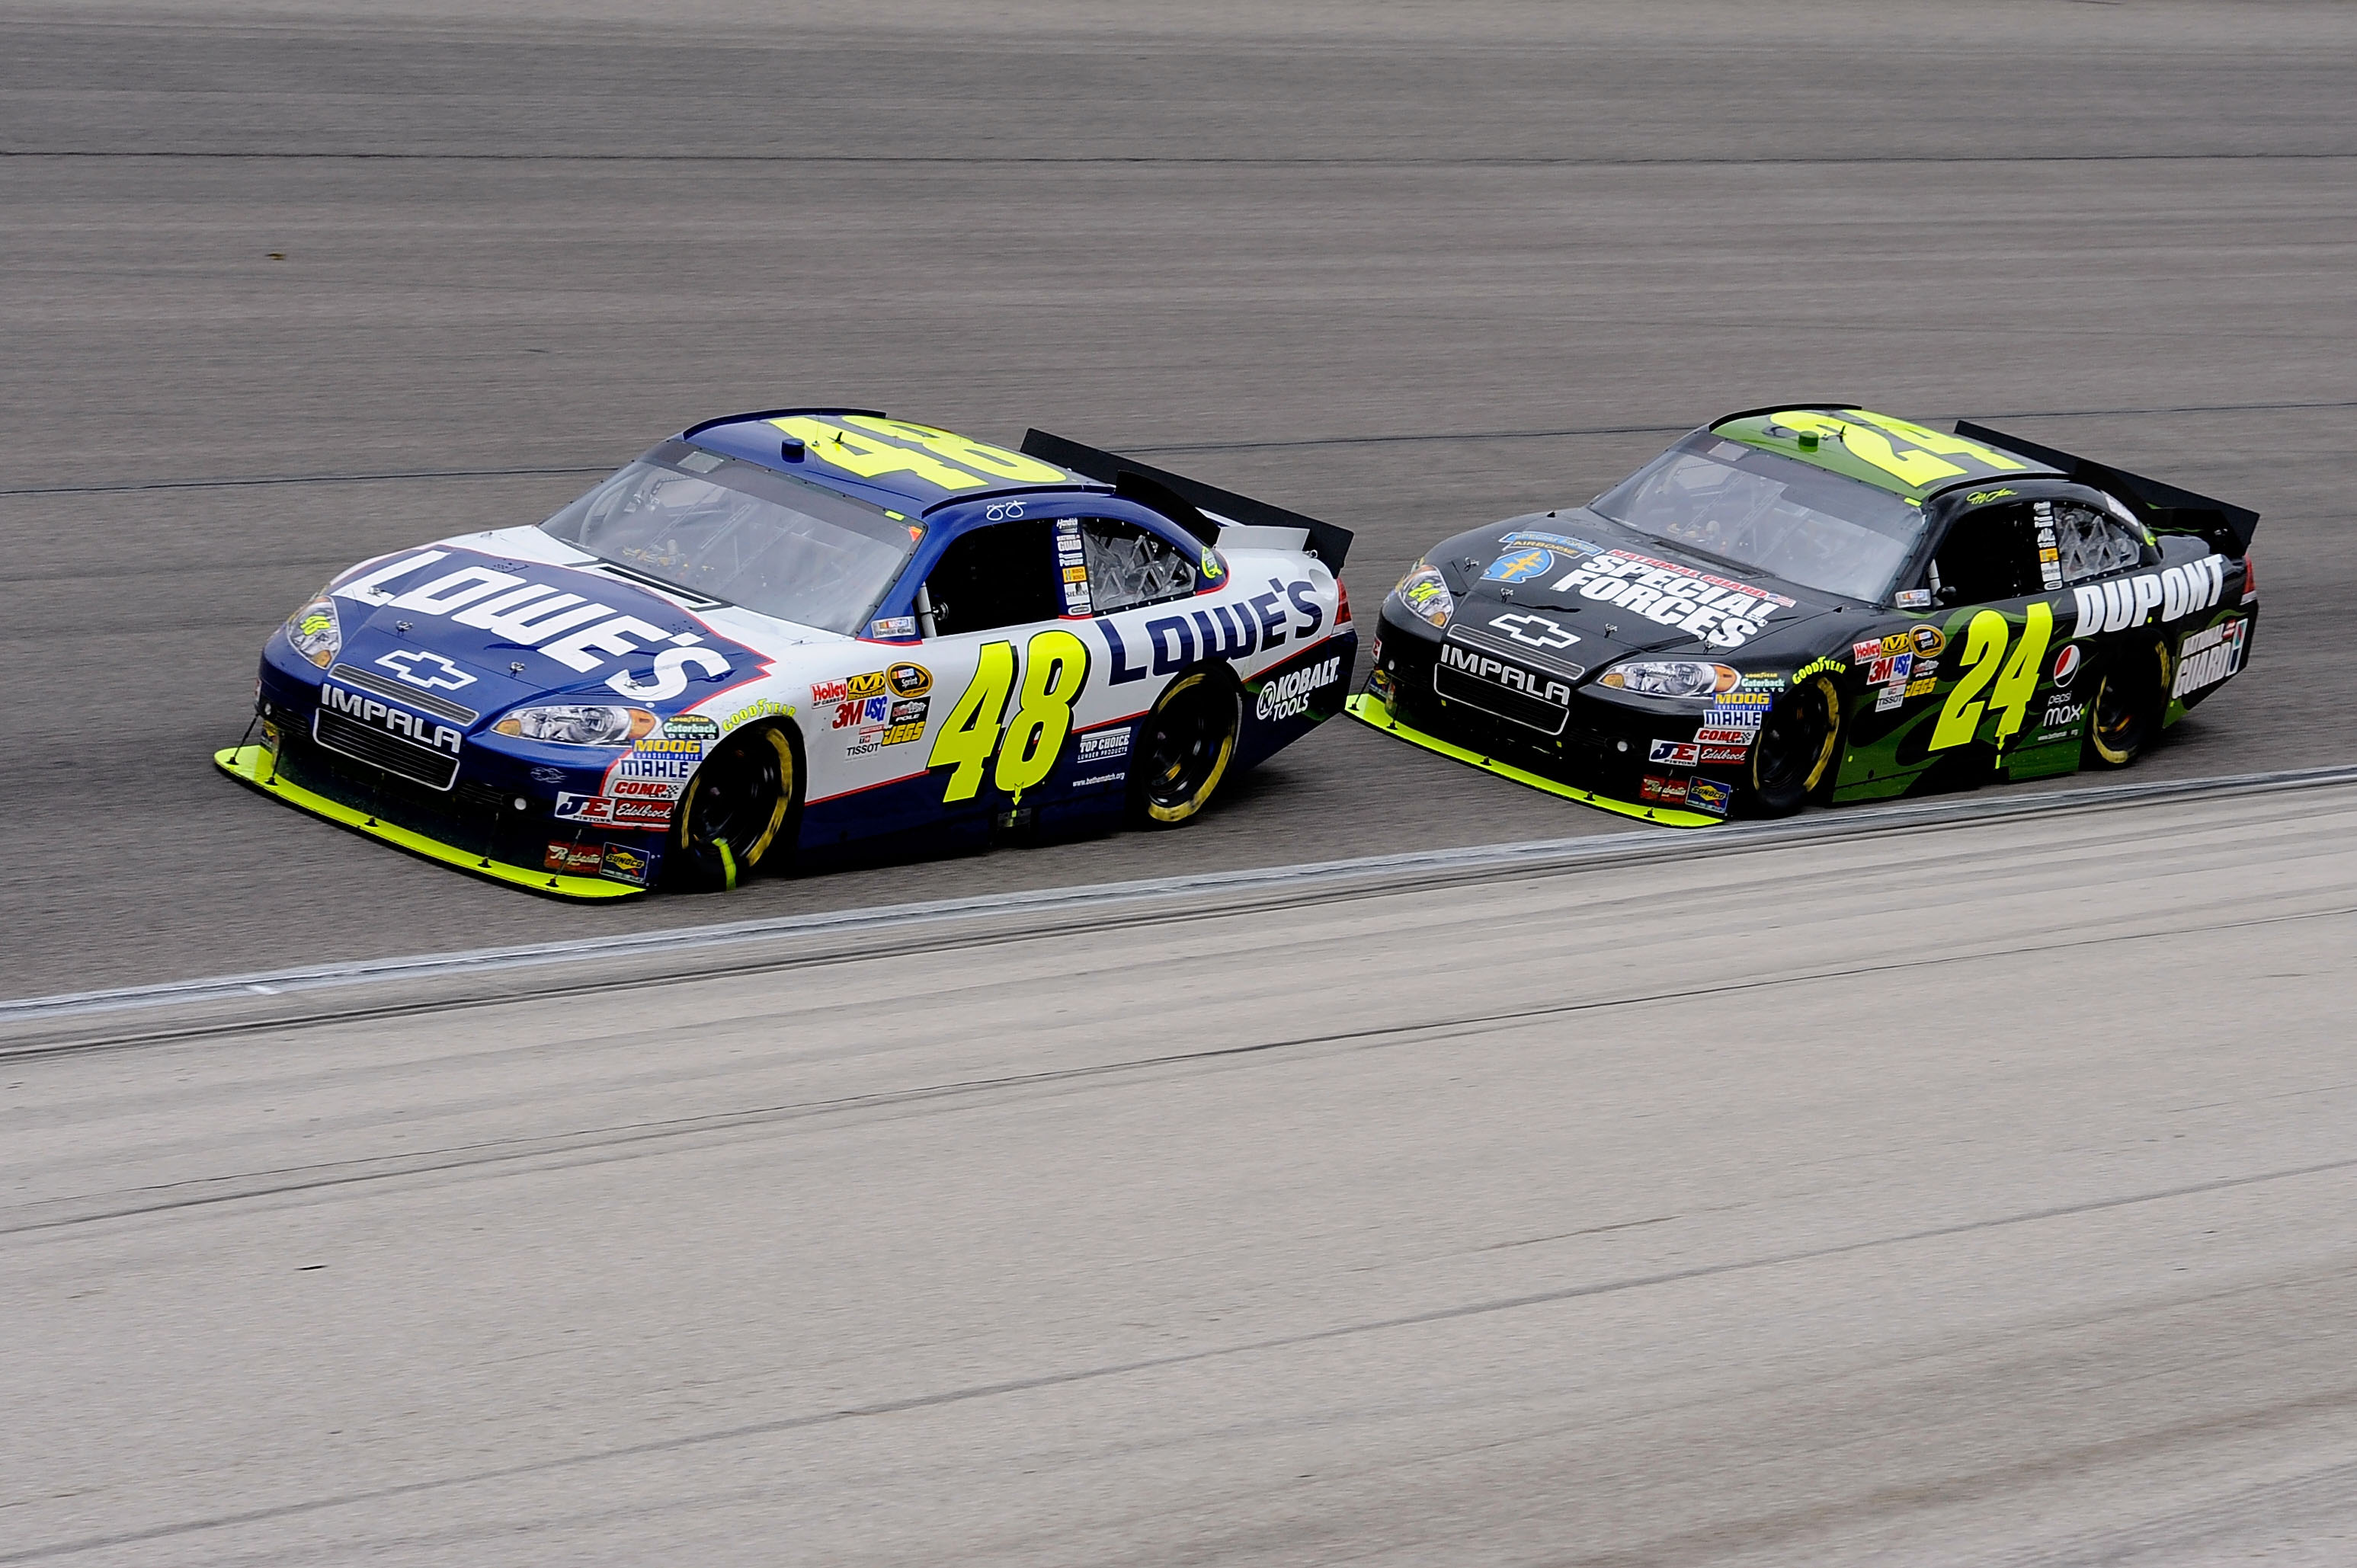 A tangle with teammate Jimmie Johnson raised eyebrows during the Texas spring race.